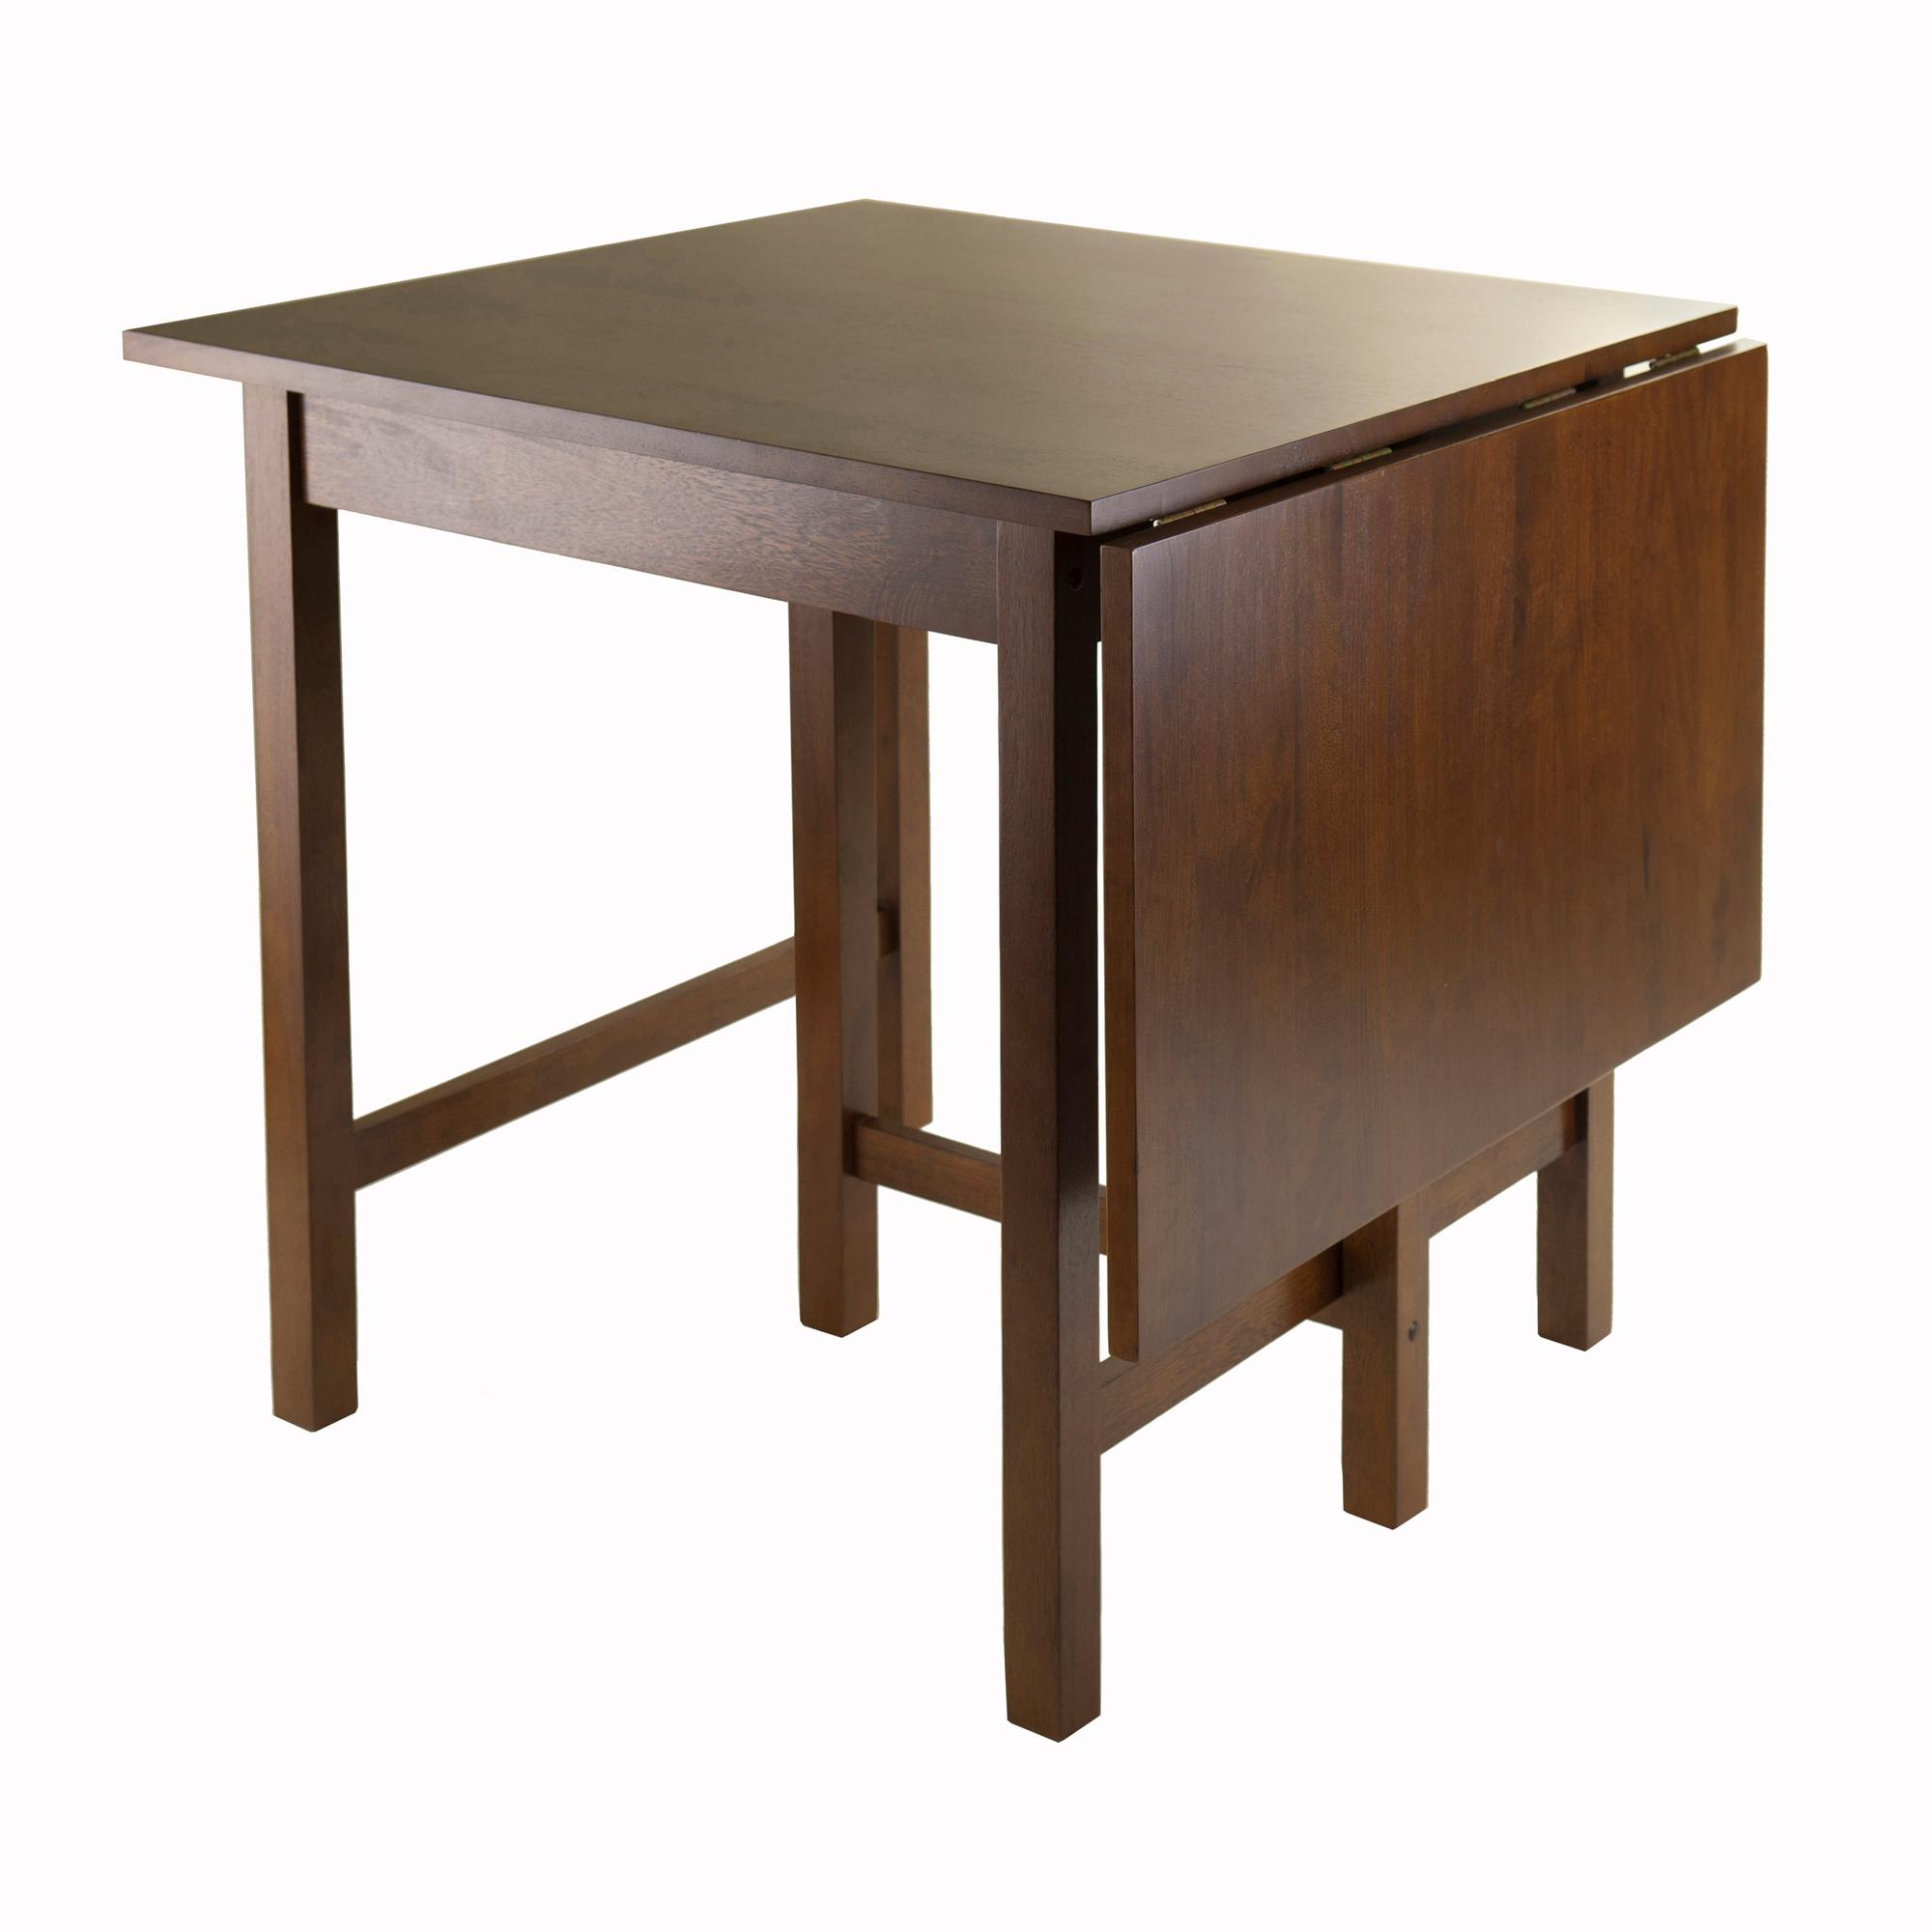 Winsome lynden drop leaf dining table tables for Table 6 of gstr 1